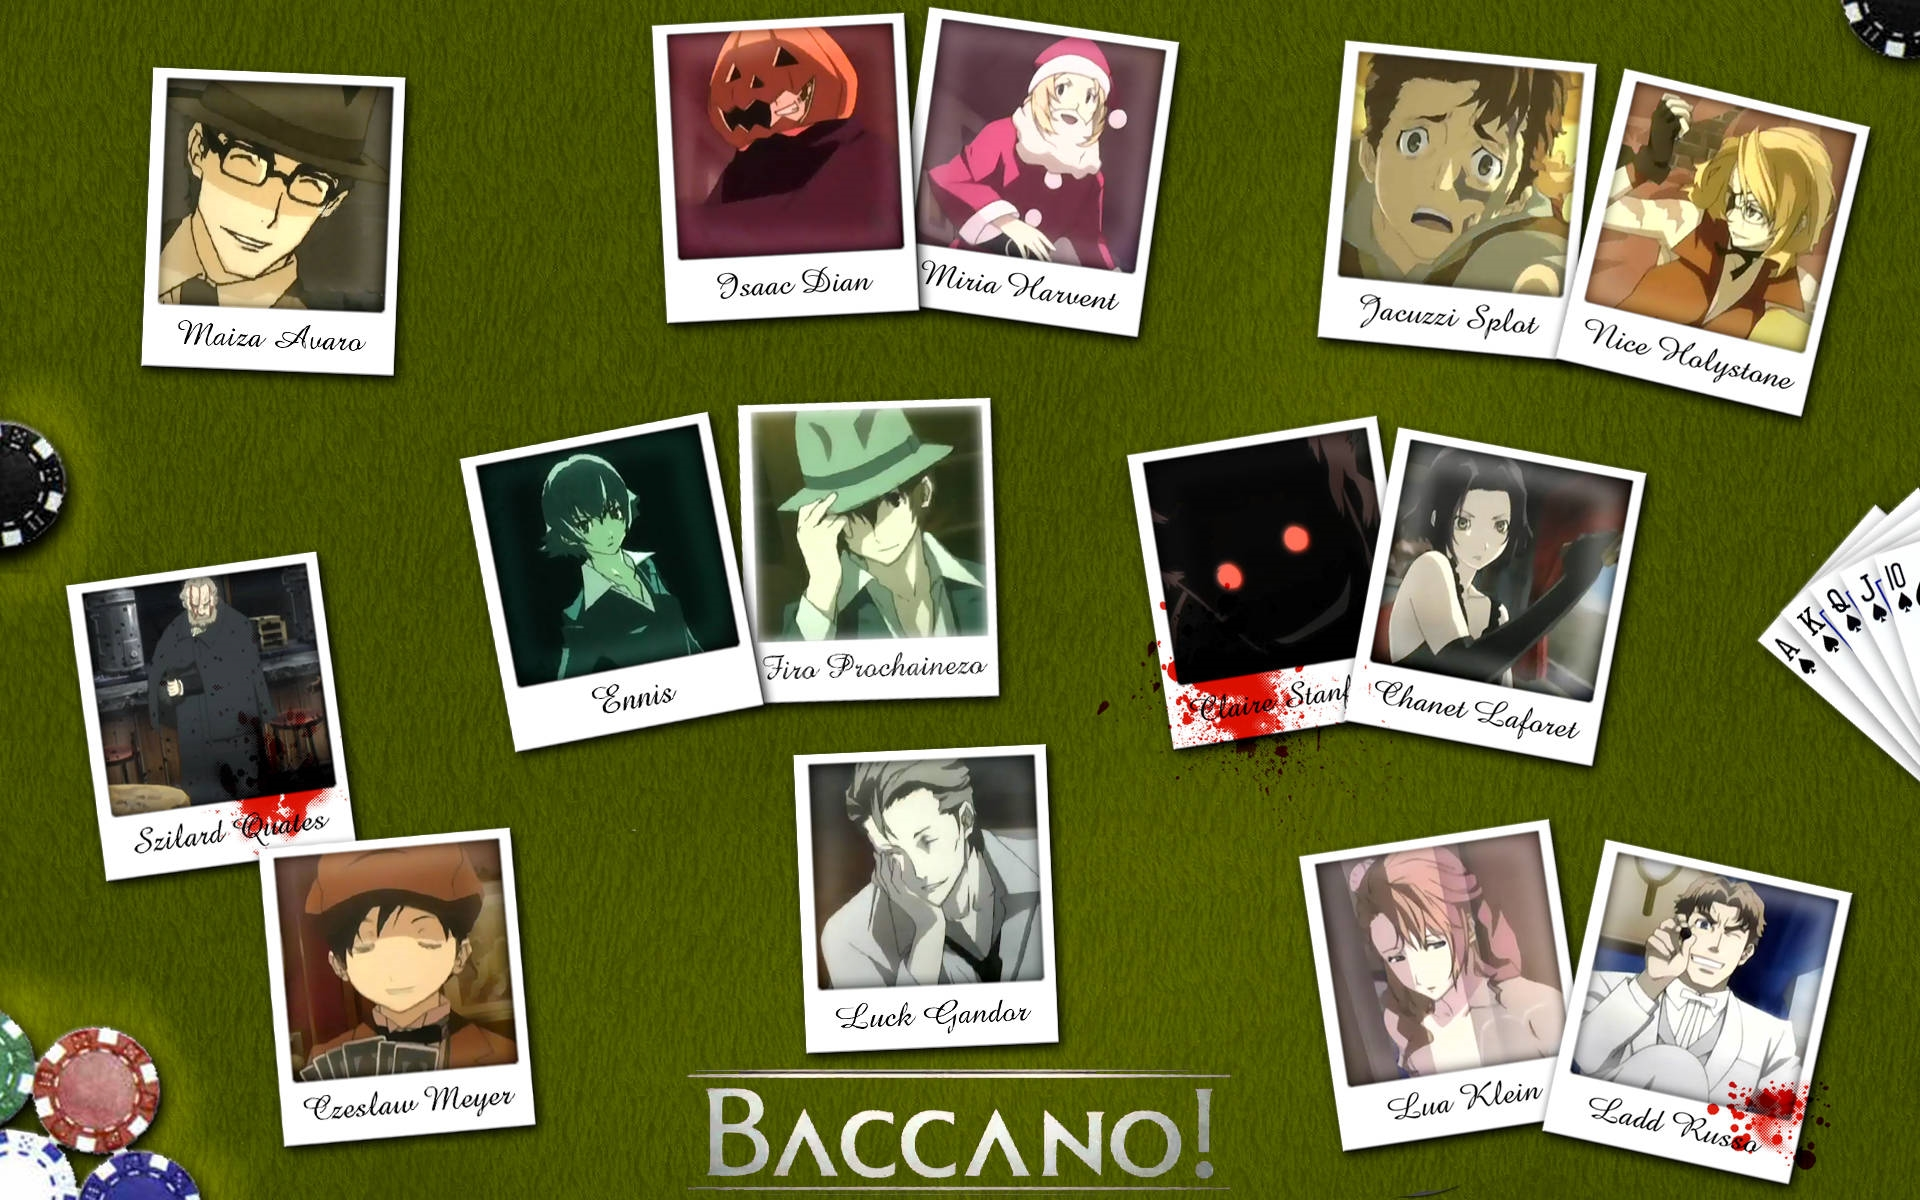 baccano background